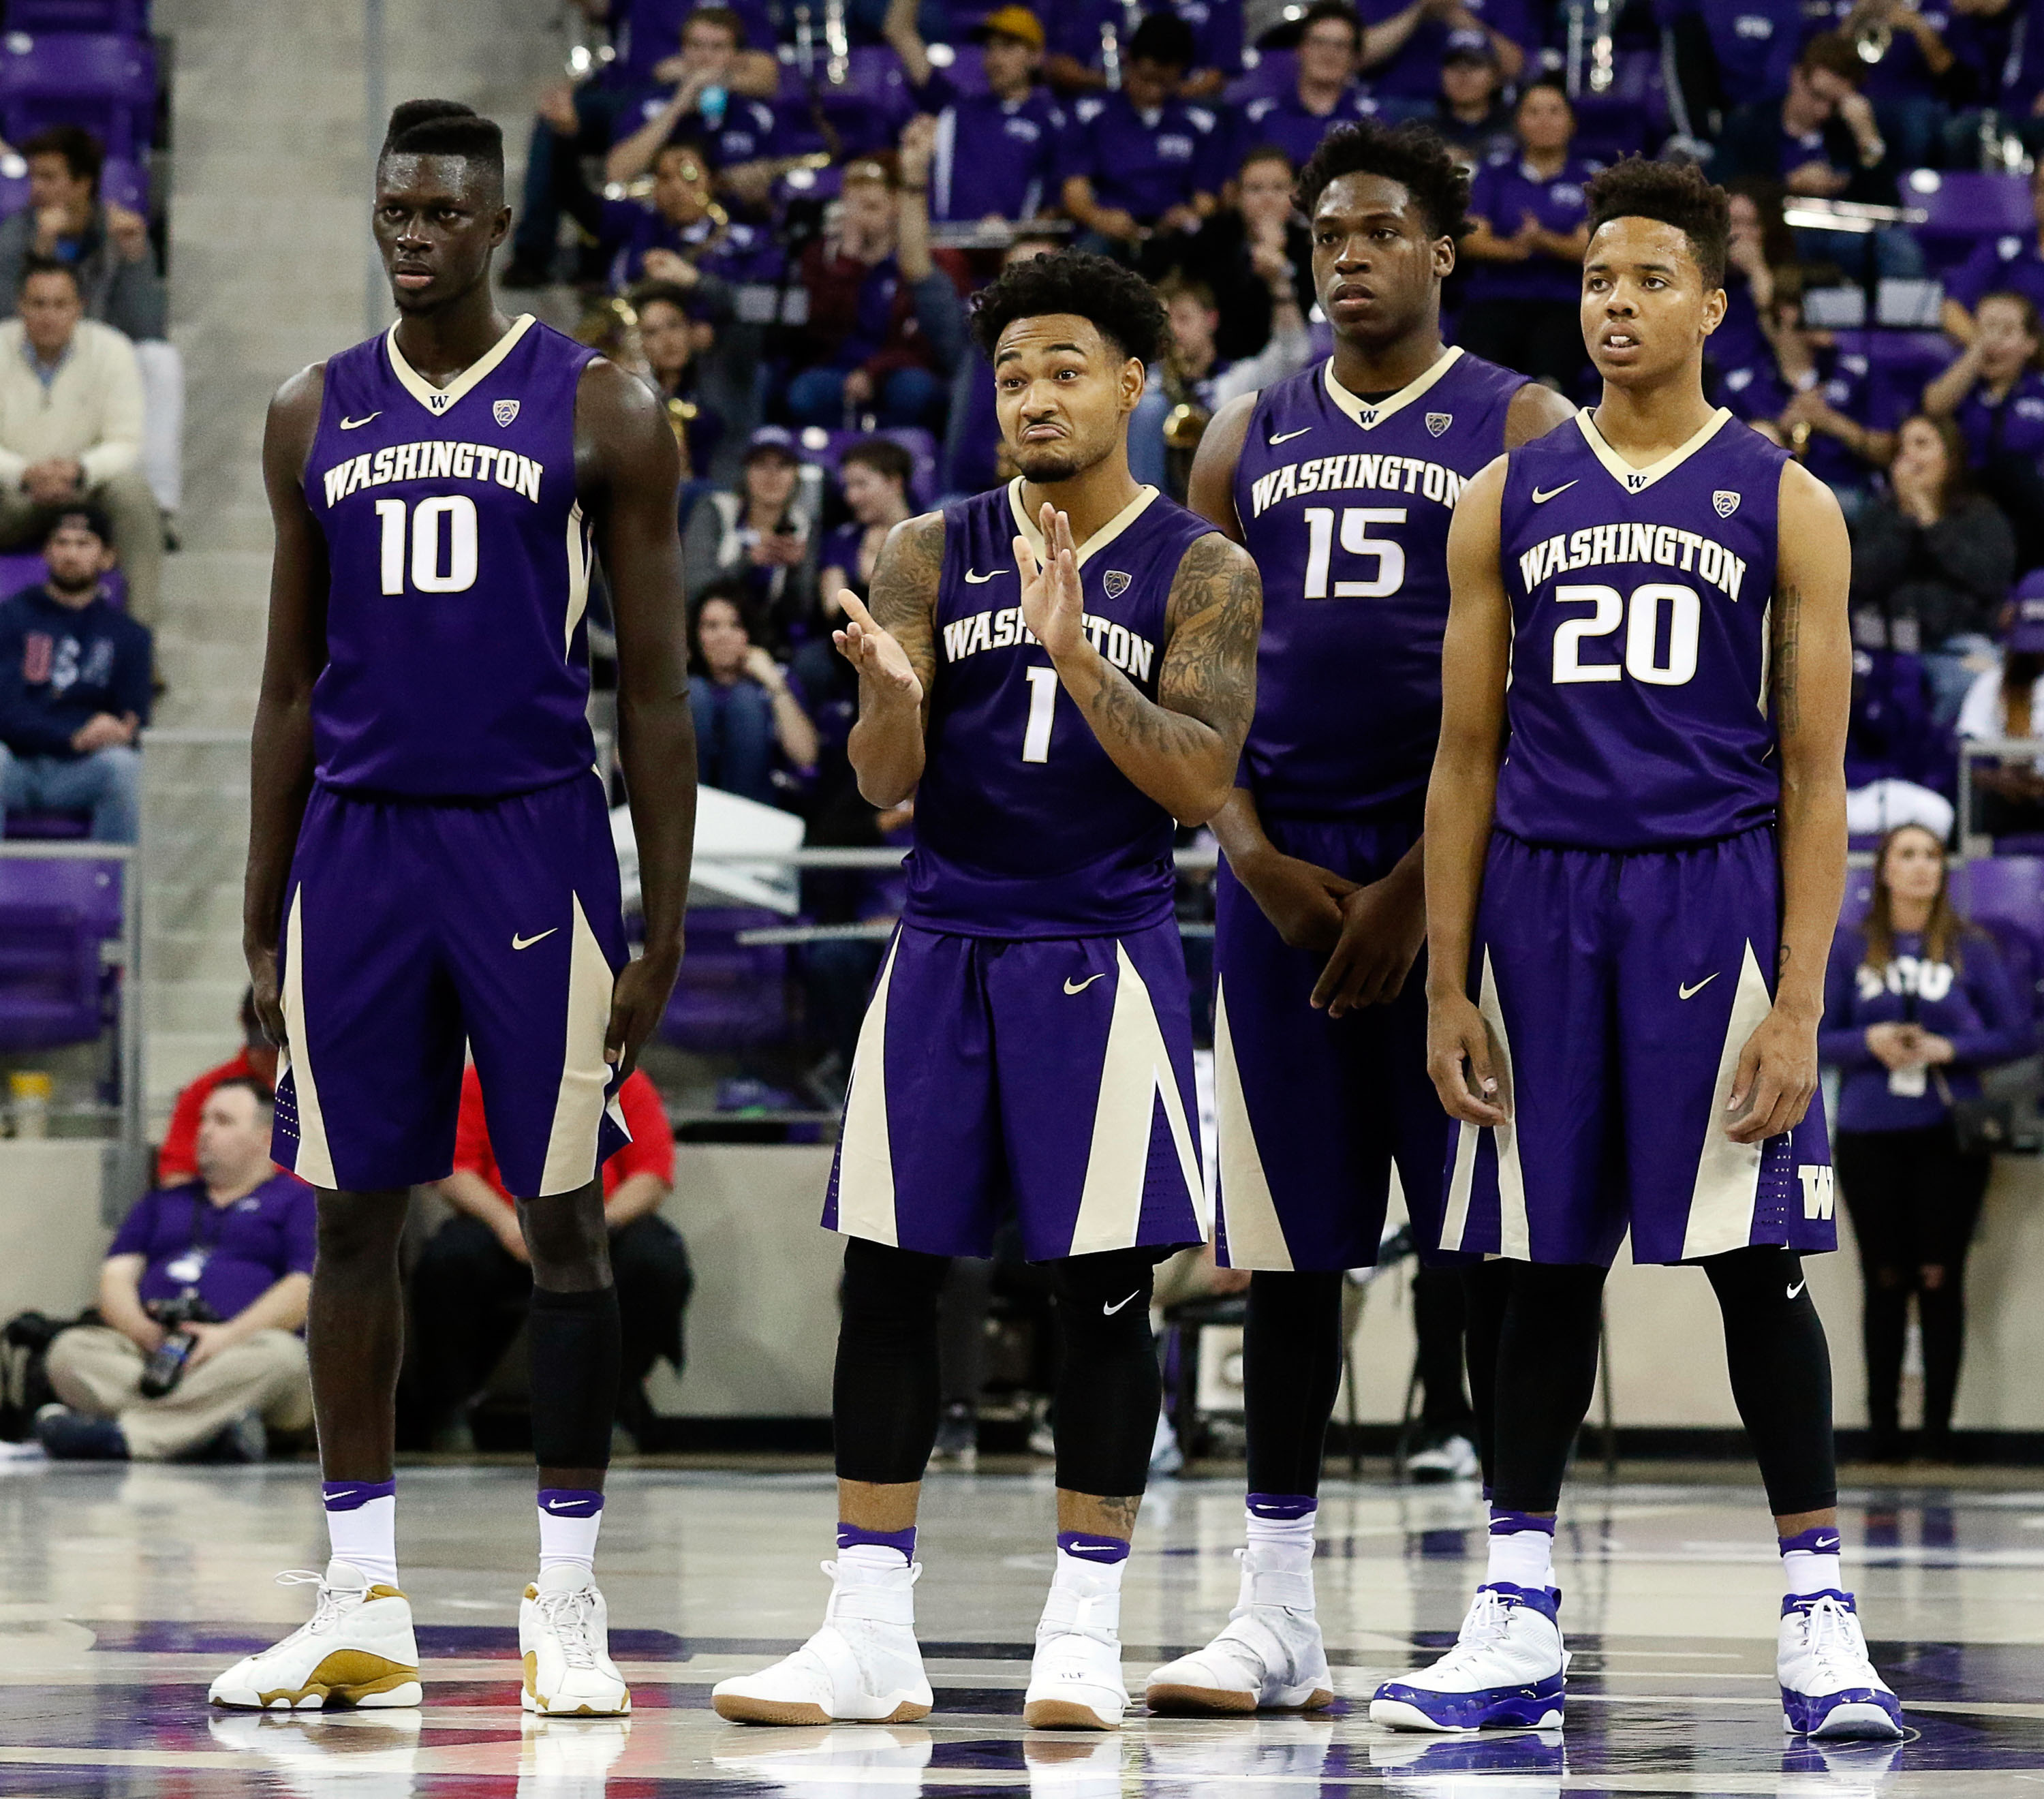 washington huskies mens basketball team hit .500 in three steps - page 2